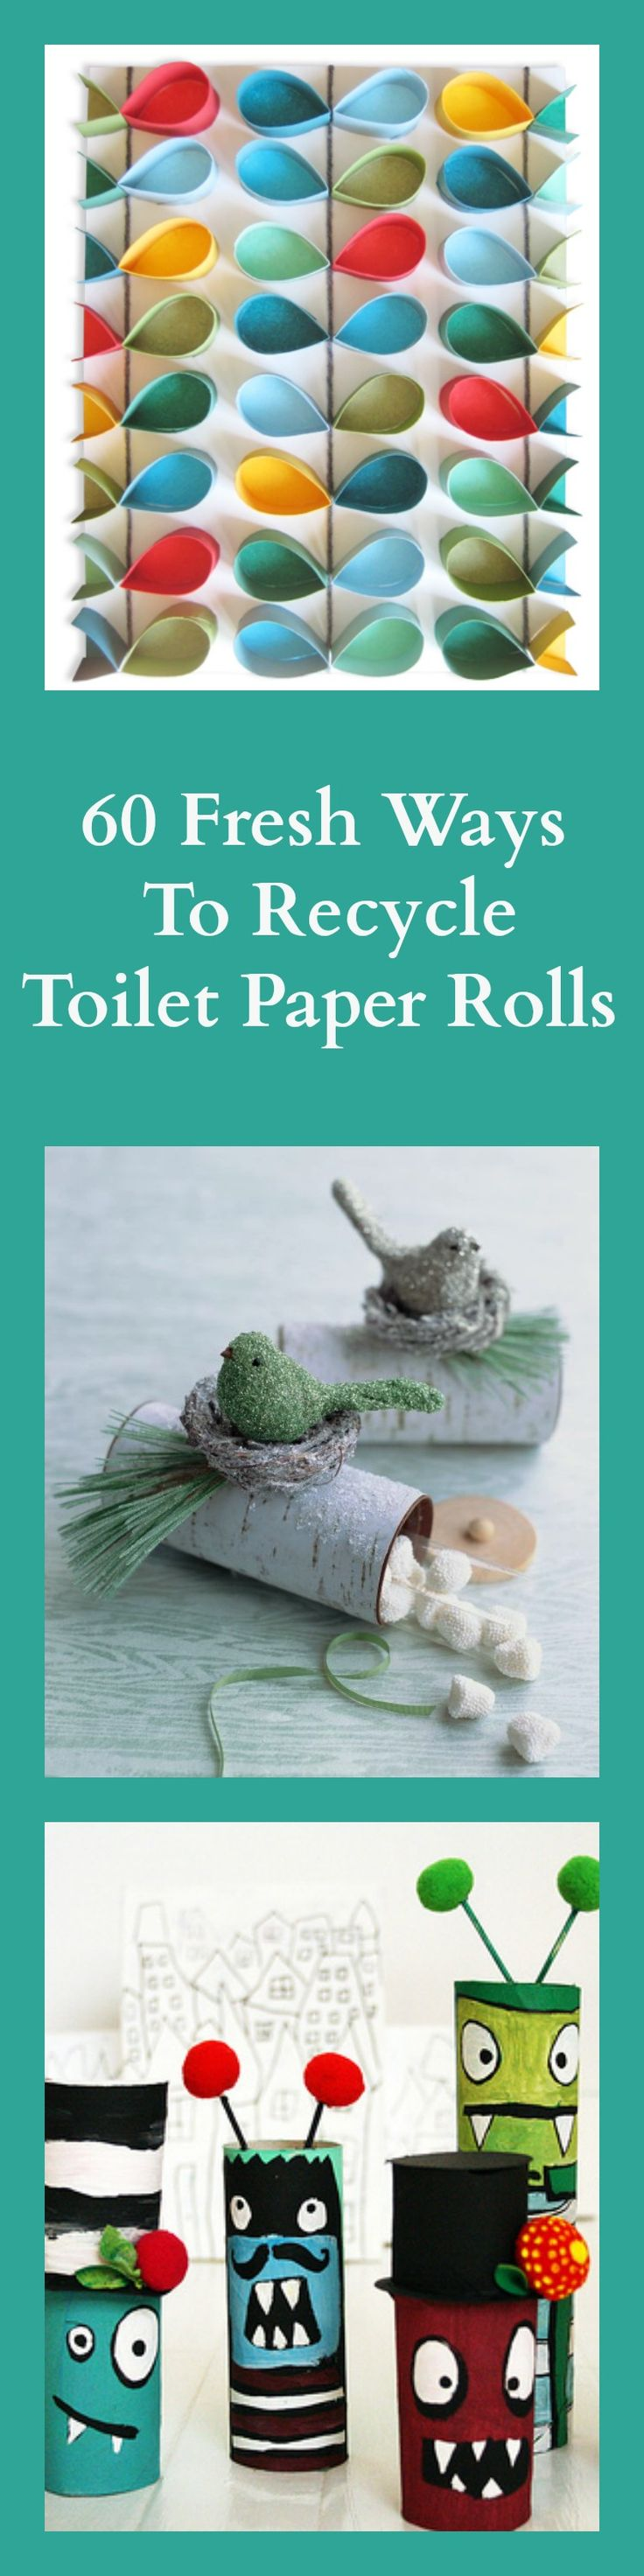 60 Fresh And Fun Ways To Recycle Toilet Paper Rolls